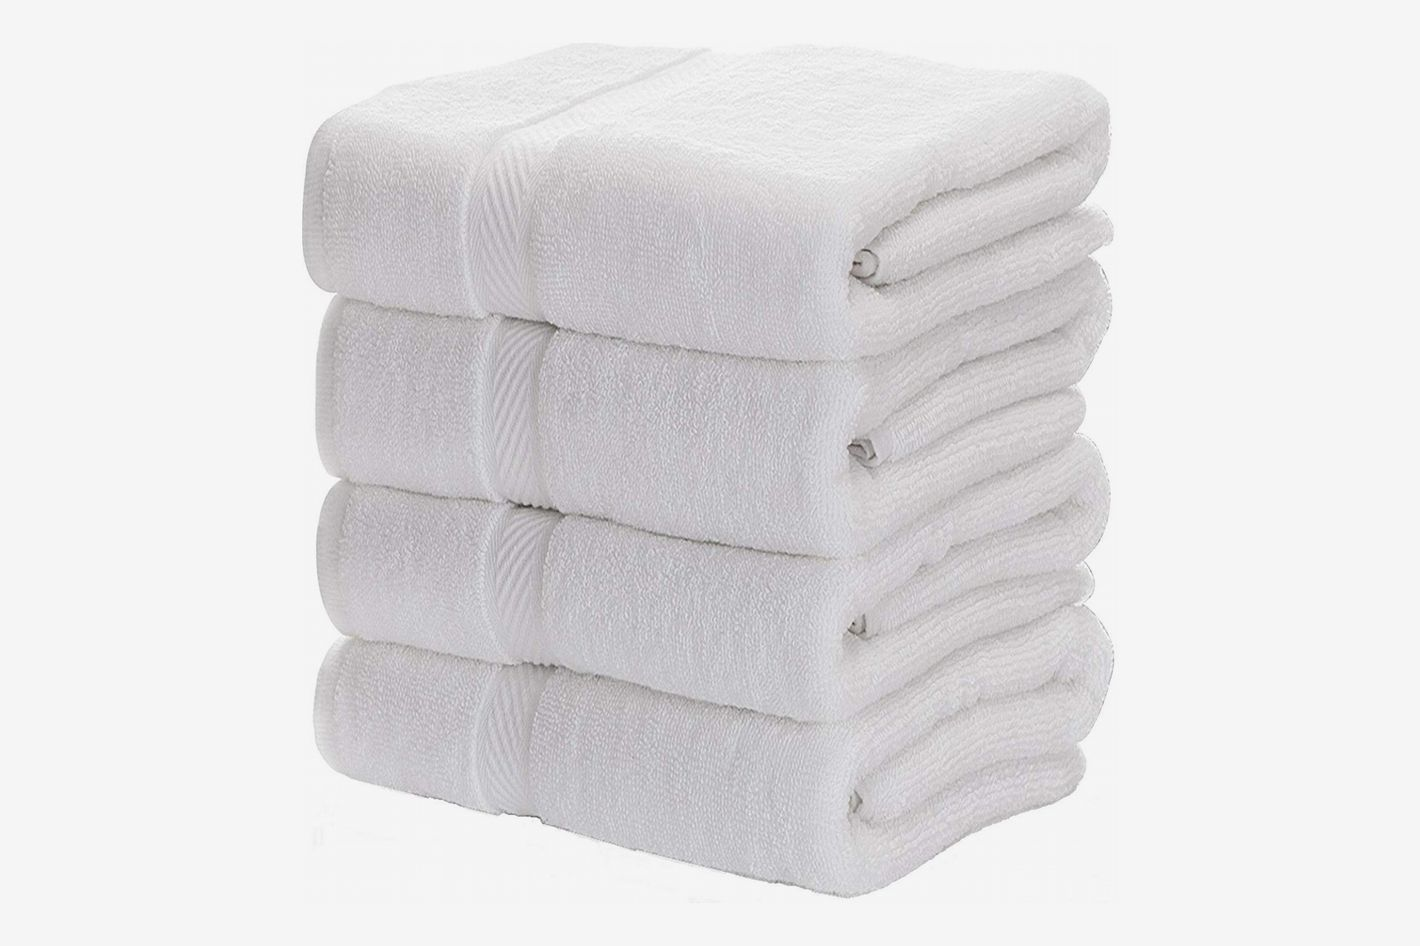 Luxury White Bath Towels 27 X 54 Inches